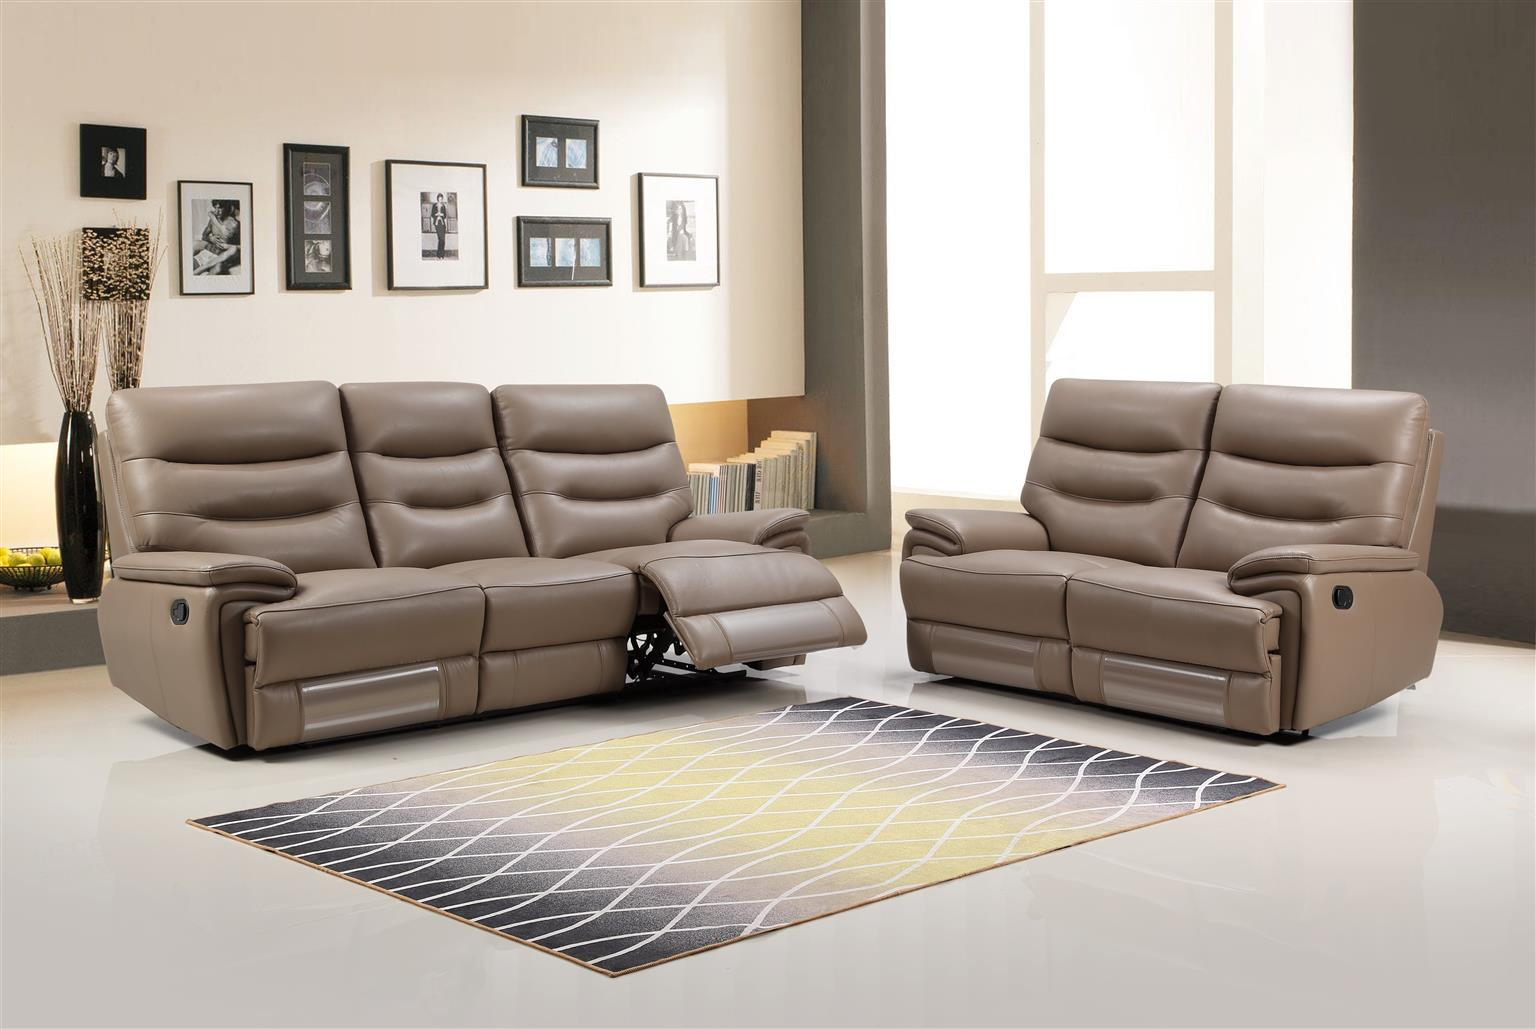 3 PIECE RECLINER LOUNGE SUITE BRAND NEW EXPRESSO COUCH FOR ONLY R 18 999!!!!!!!!!!!!!!!!!!!!!!!